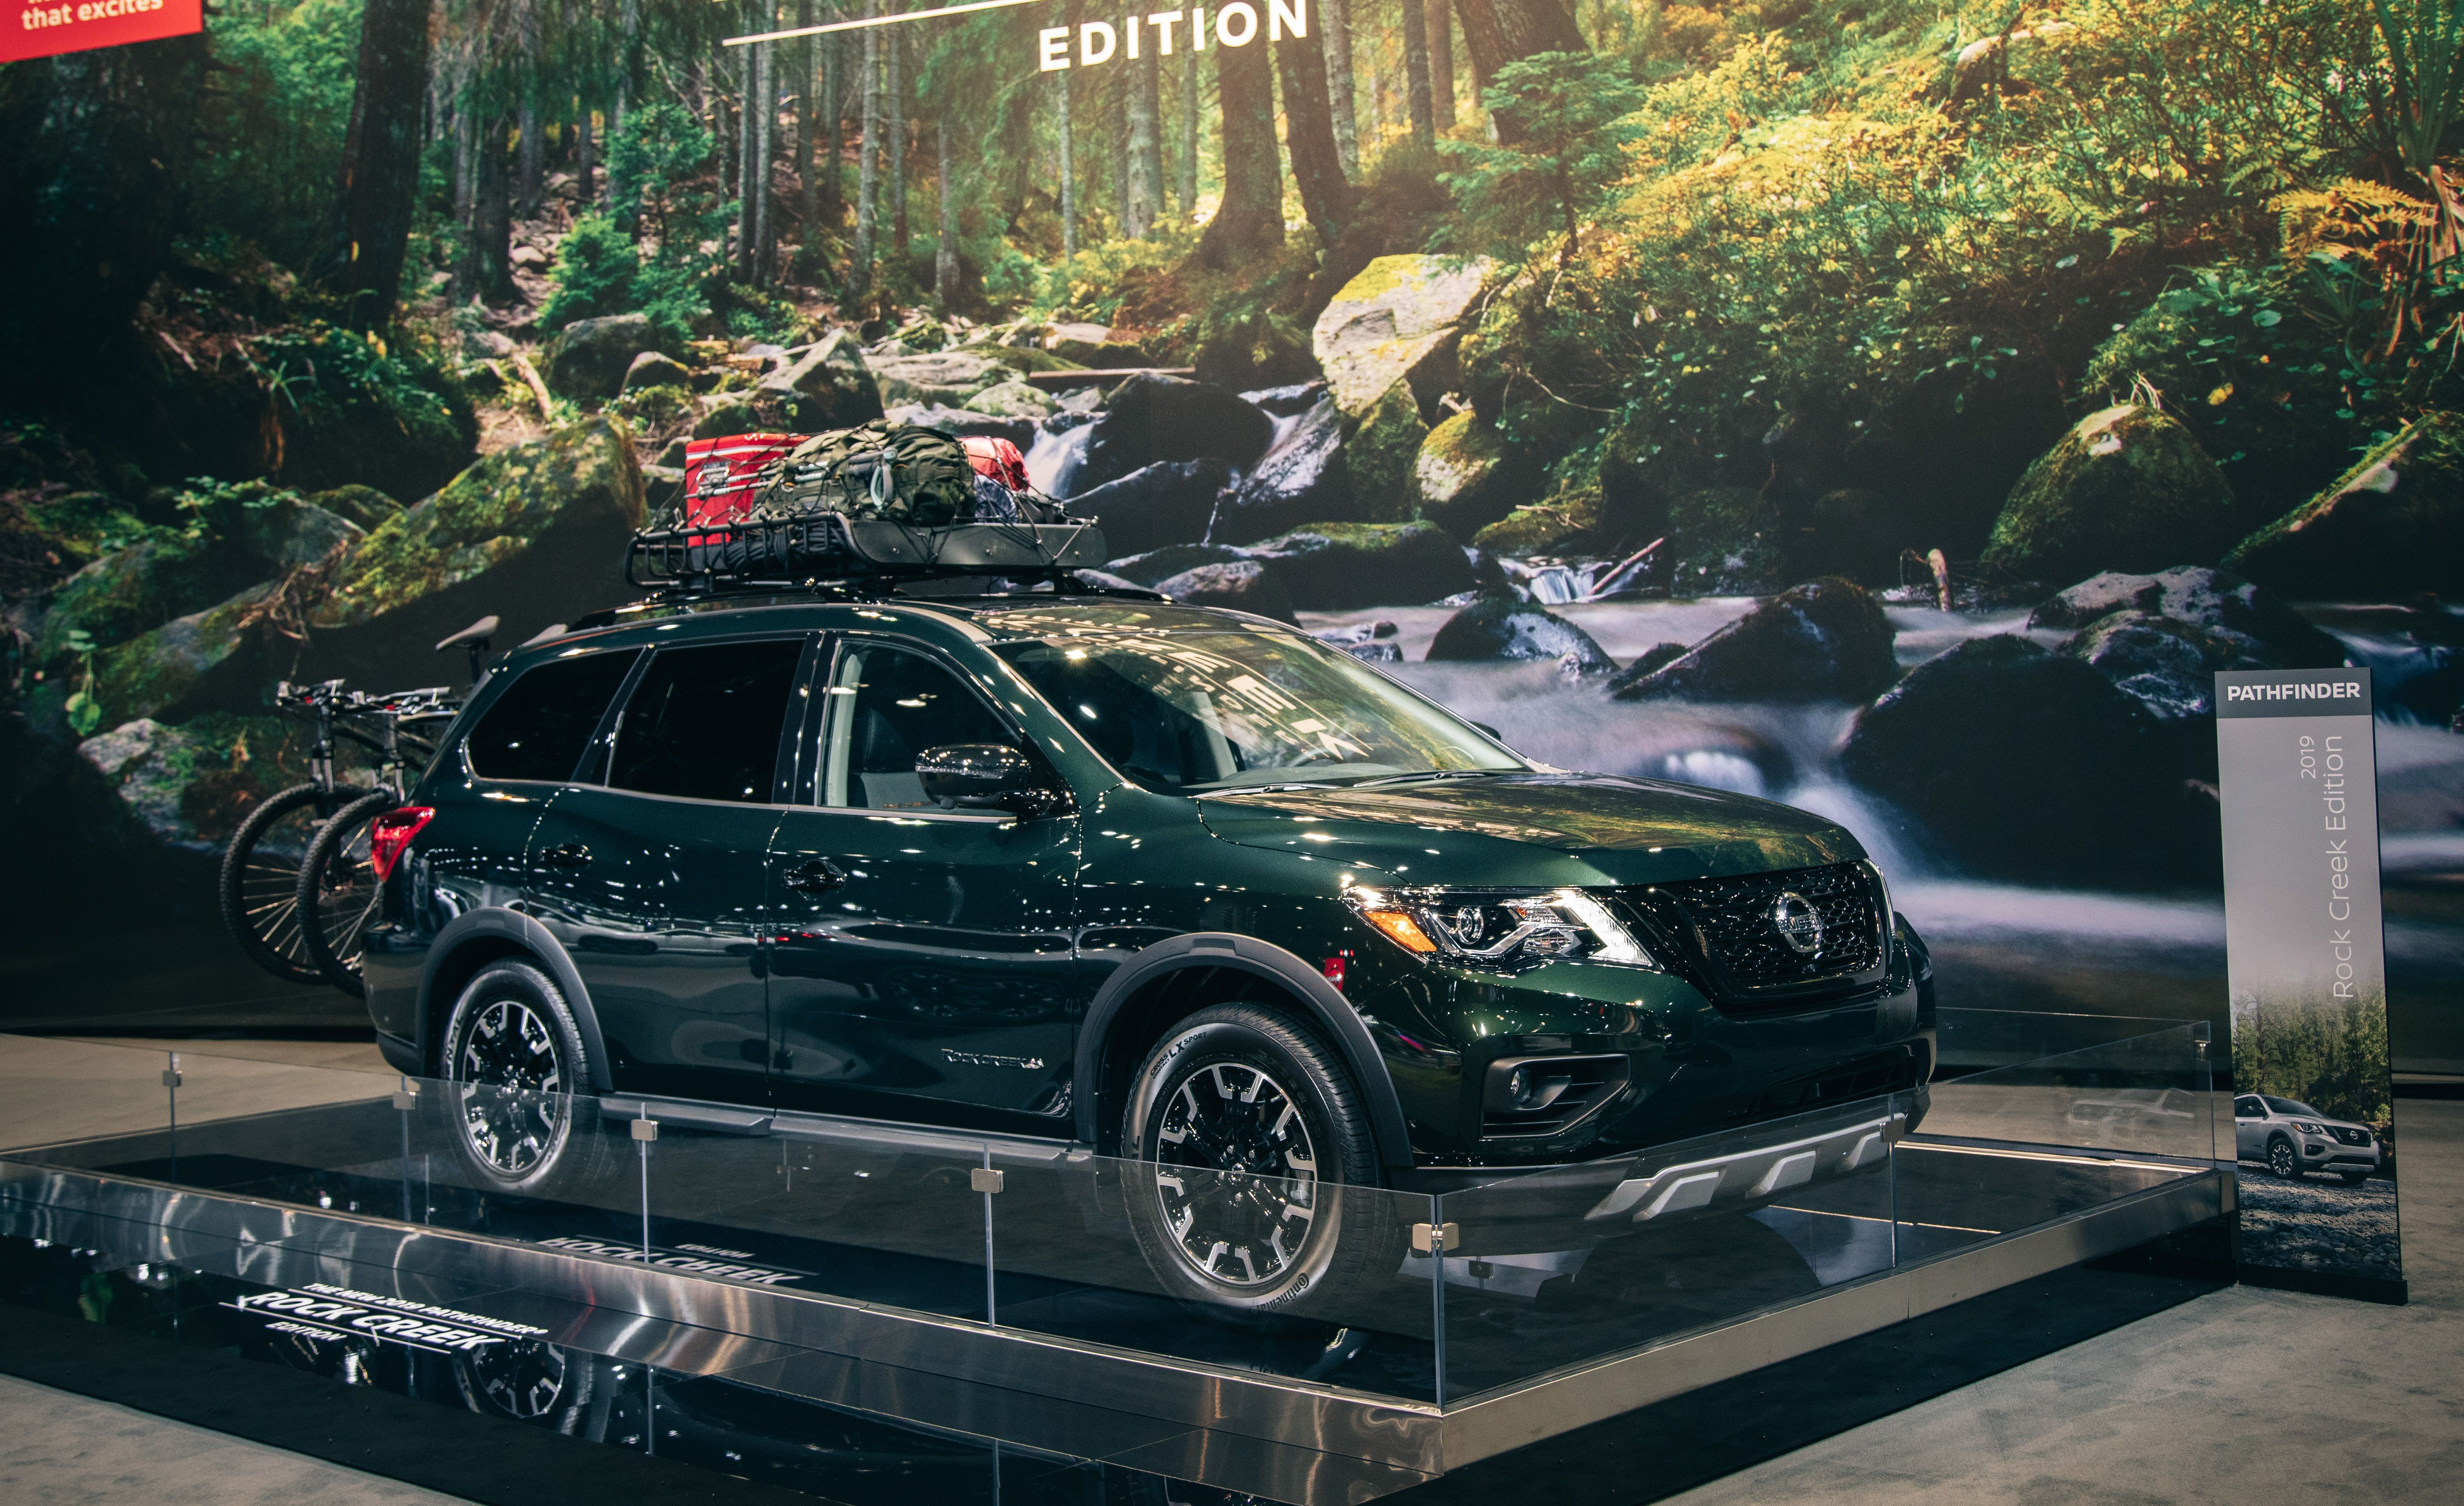 2019 Nissan Pathfinder Reviews   Nissan Pathfinder Price, Photos, and Specs   Car and Driver